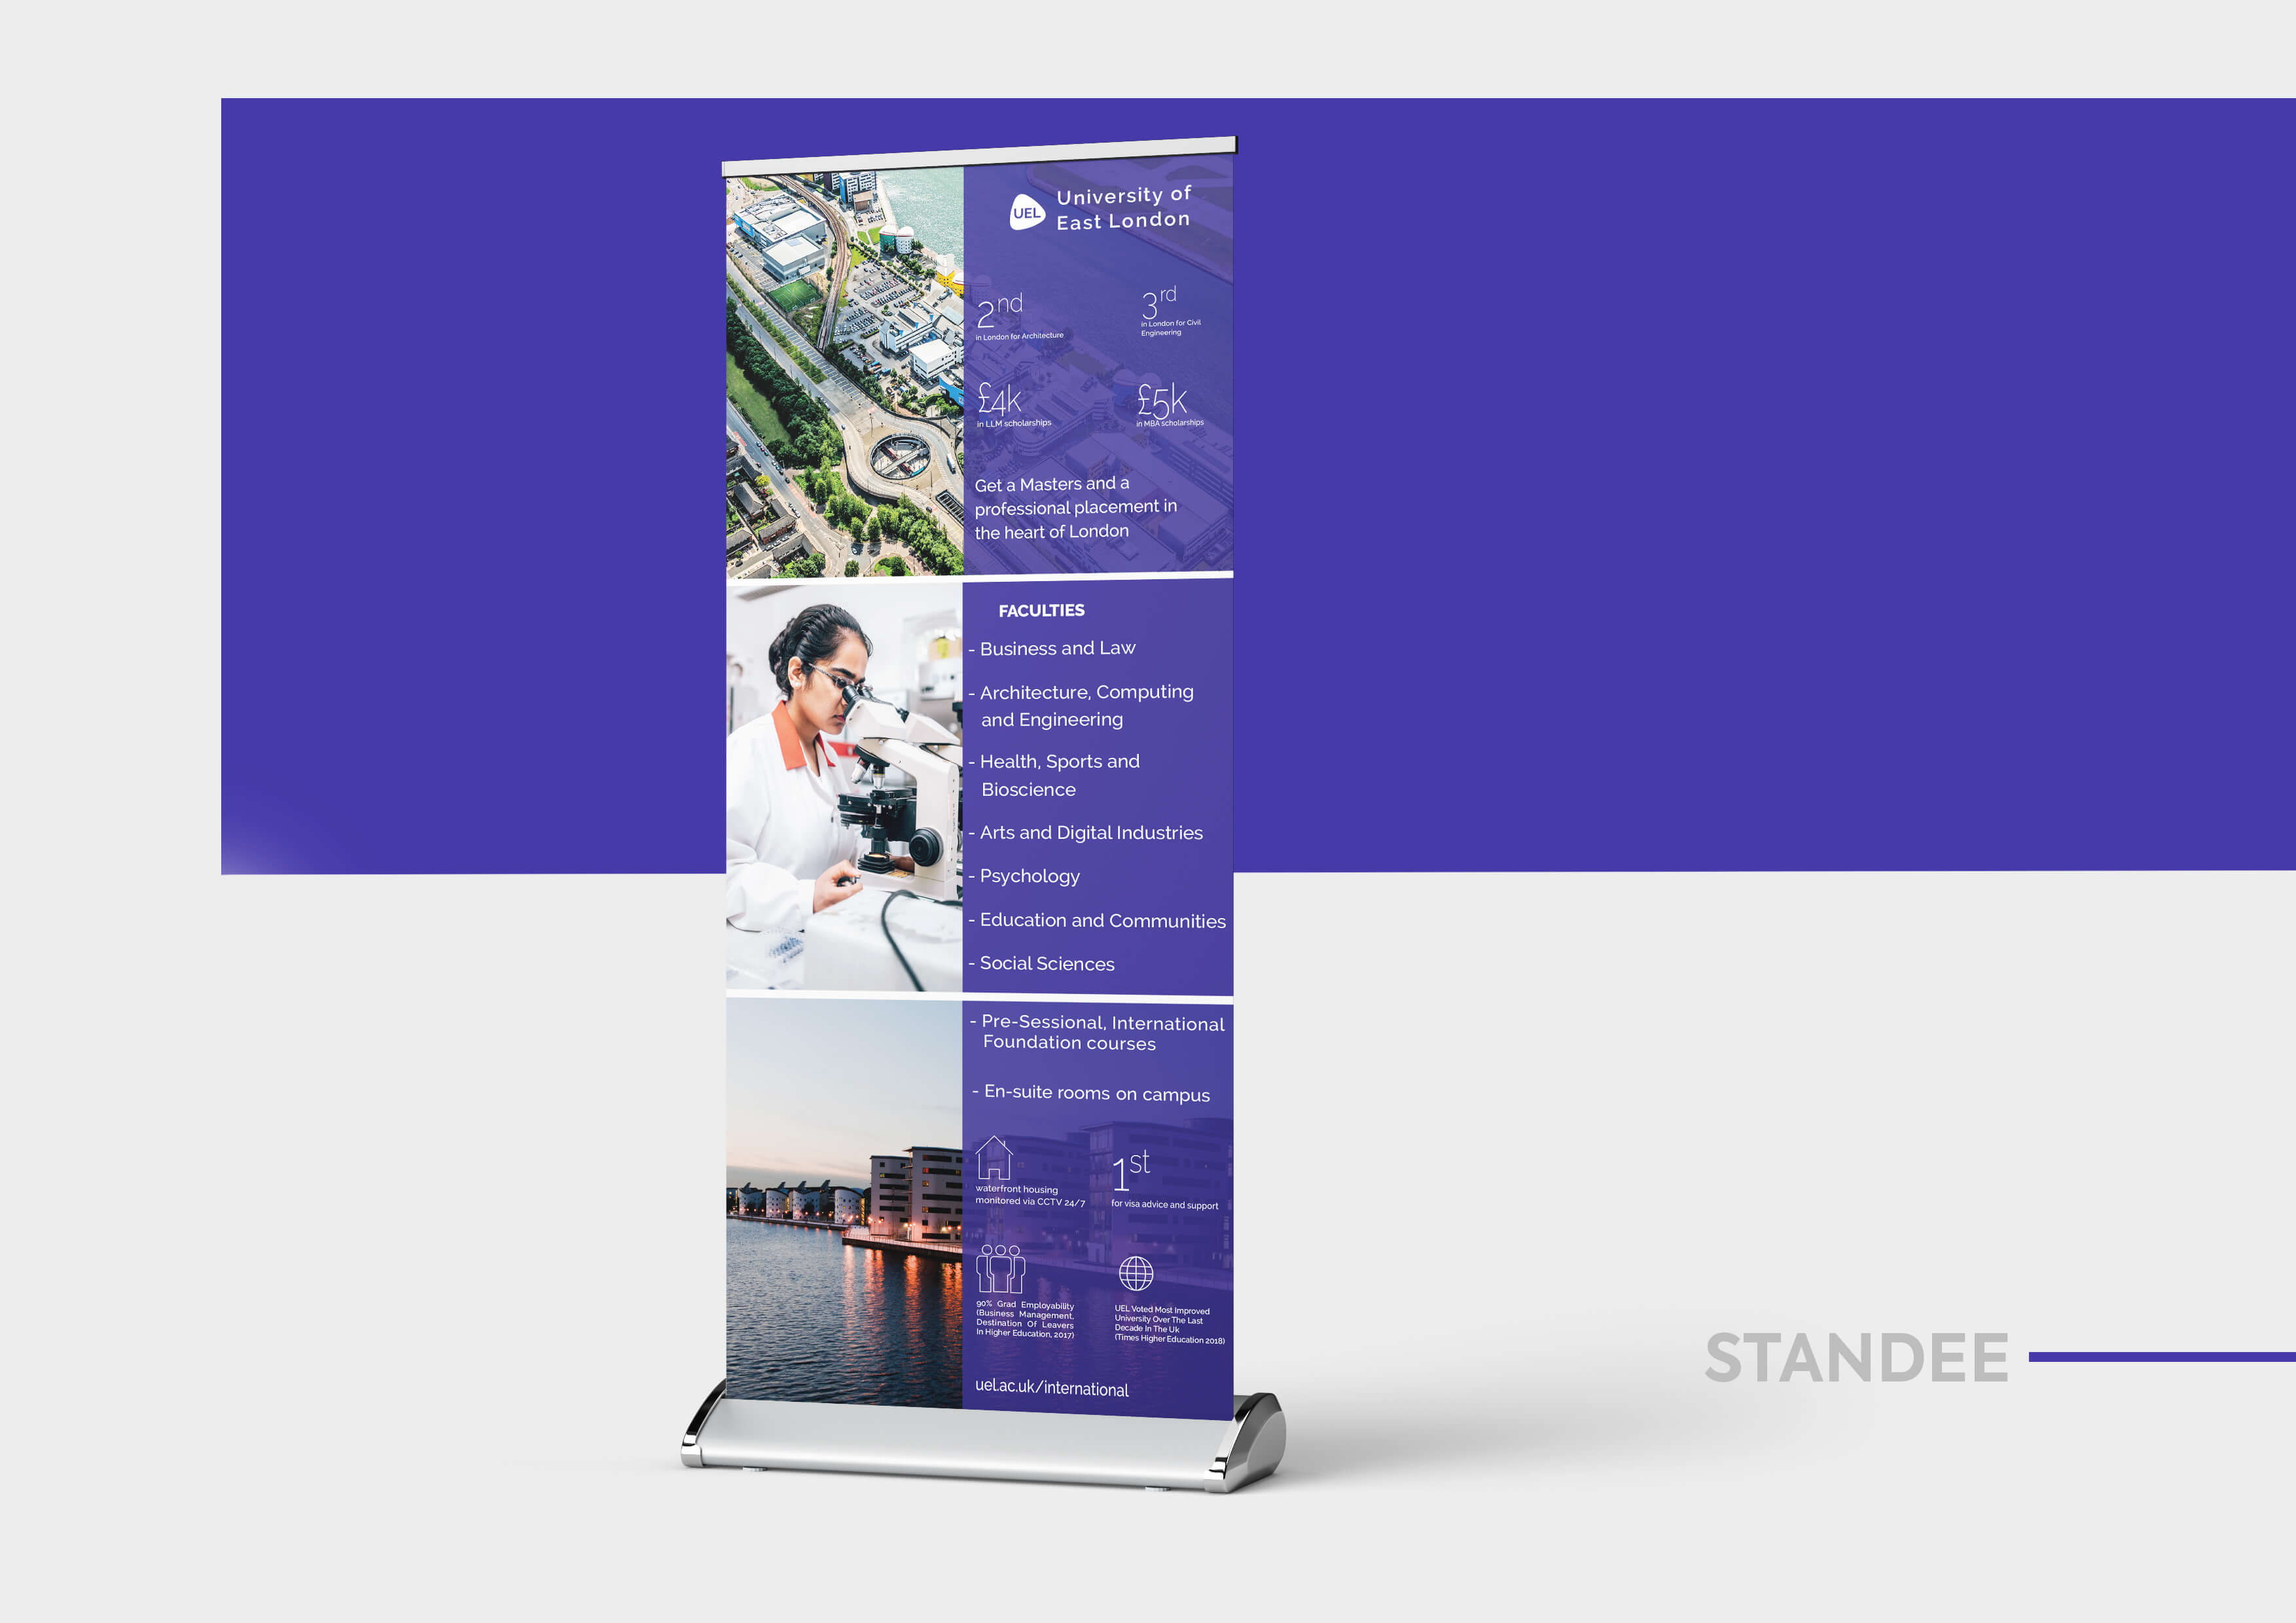 Standee, university of east london, designing, printing, university marketing